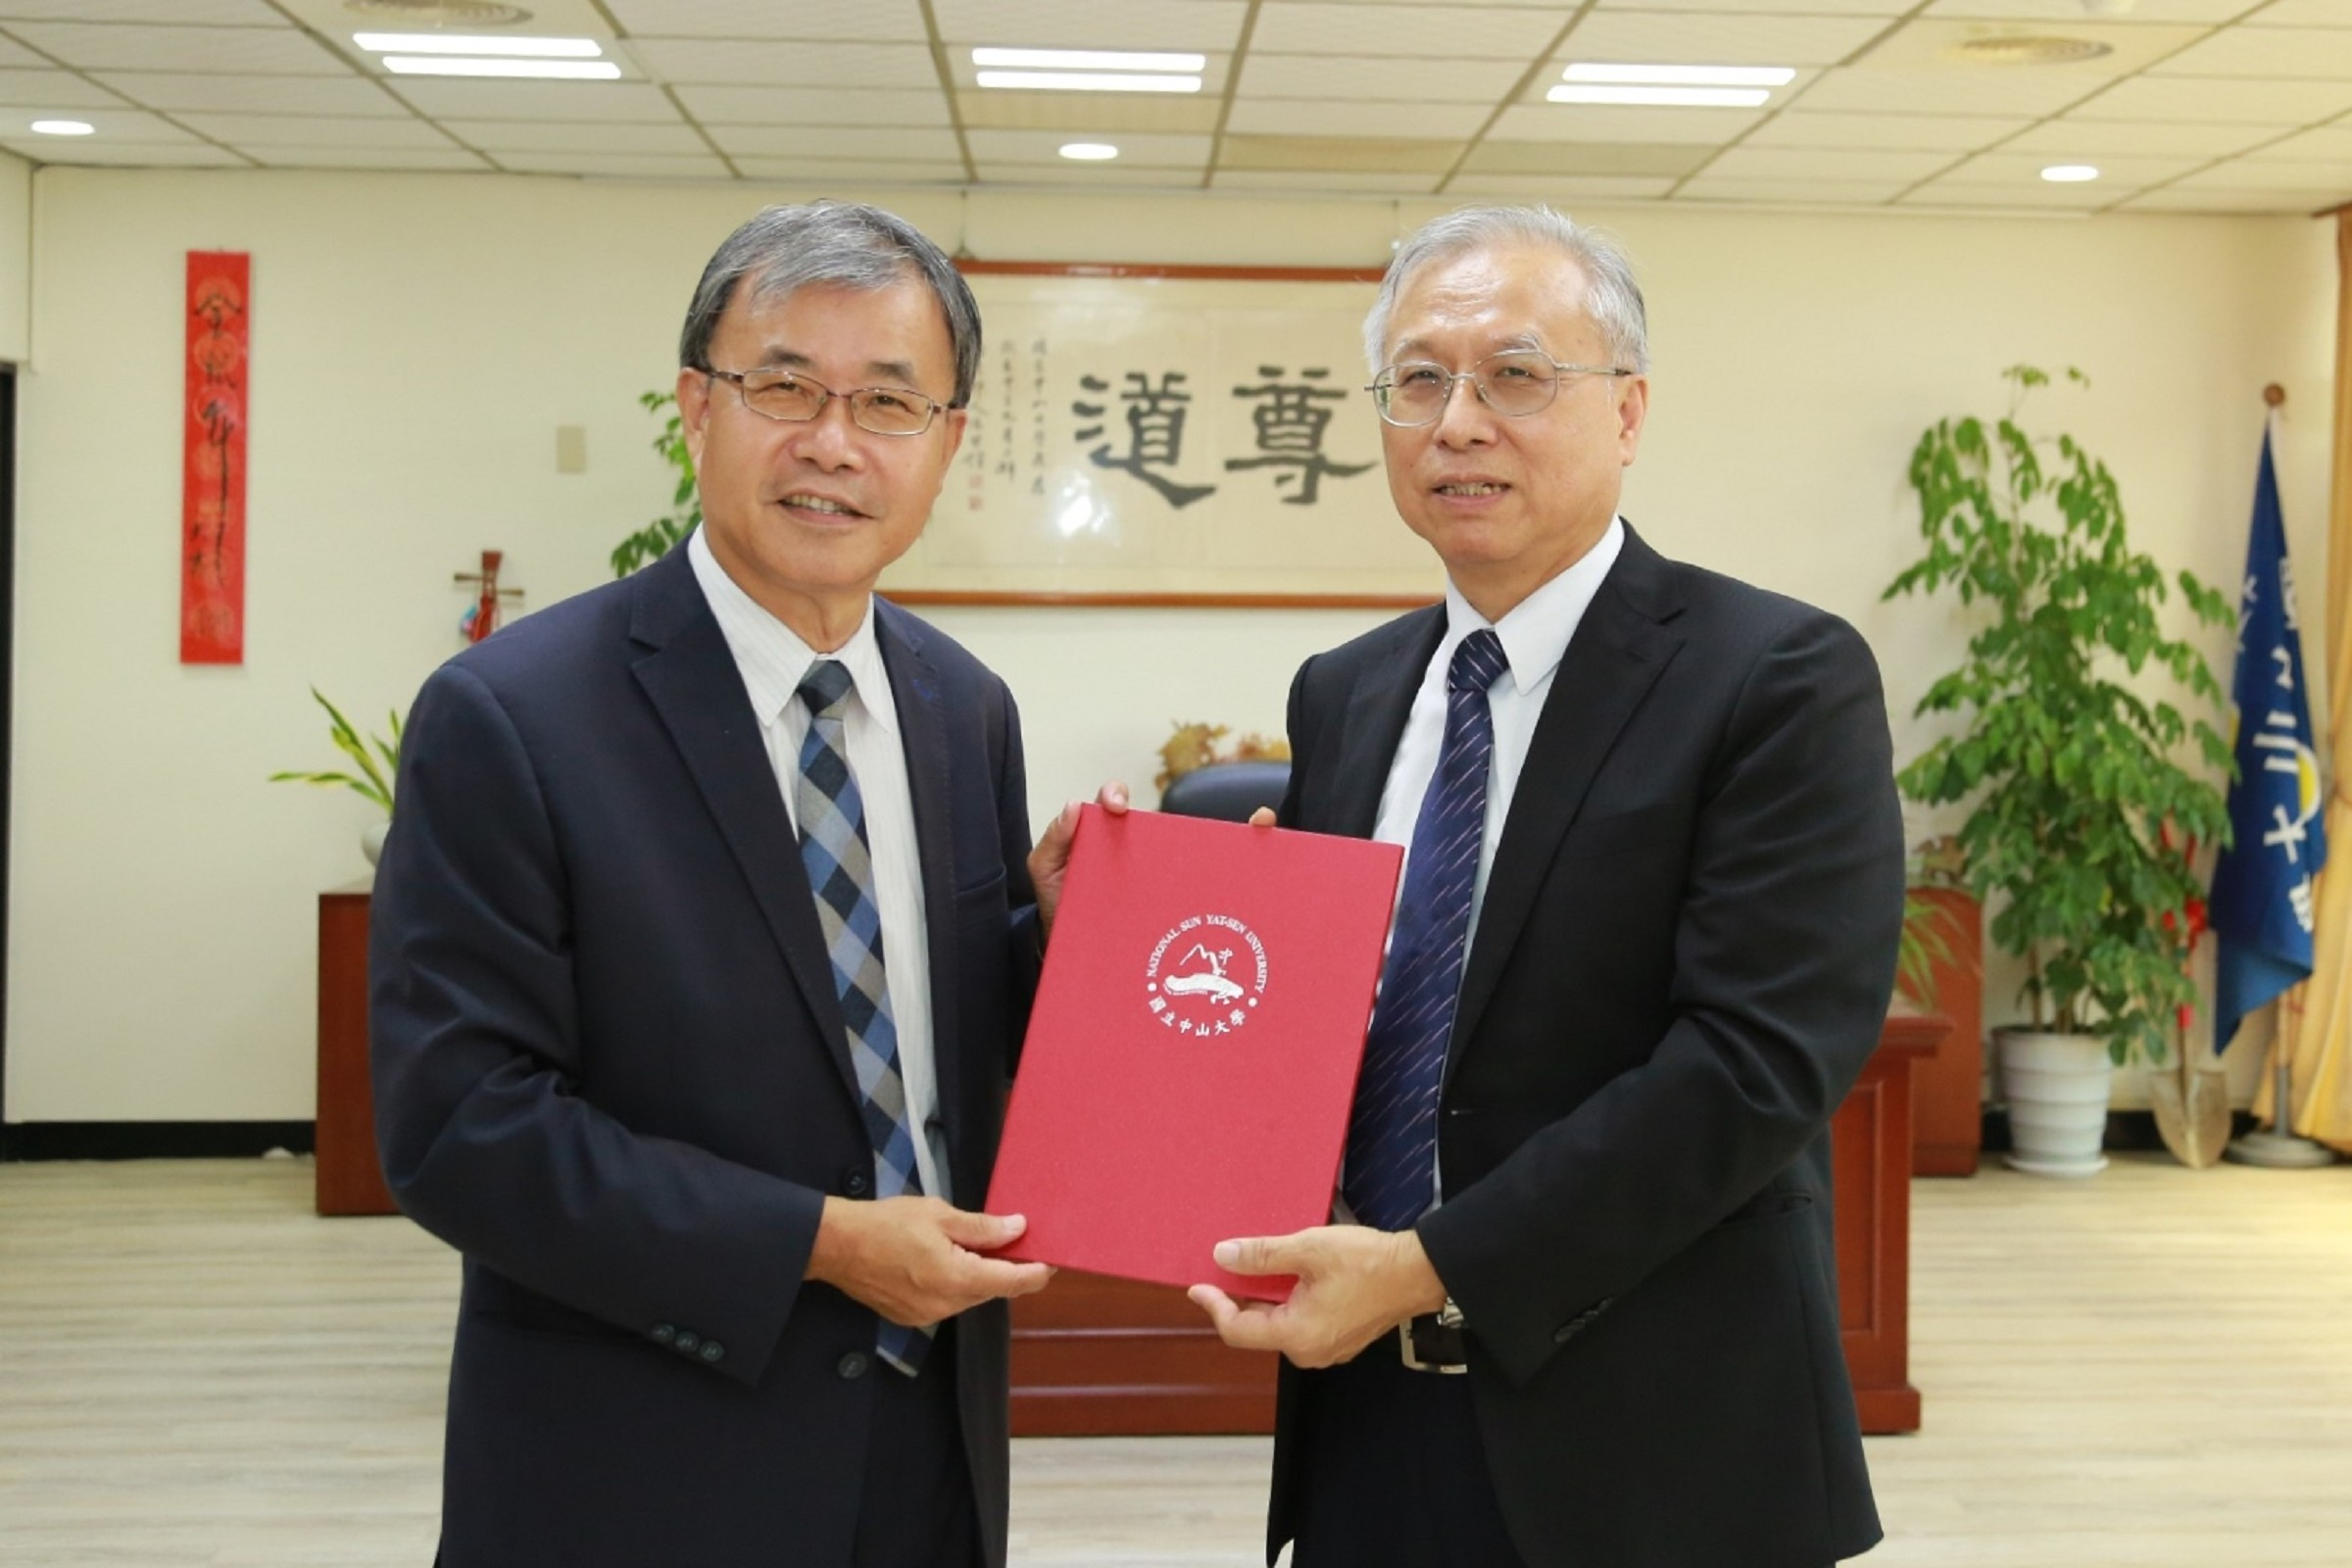 NSYSU employs former Vice Superintendent of the KGVH Shaw-Yeu Jeng as the Director of the Provisional Office of the NSYSU School of Post-Baccalaureate Medicine